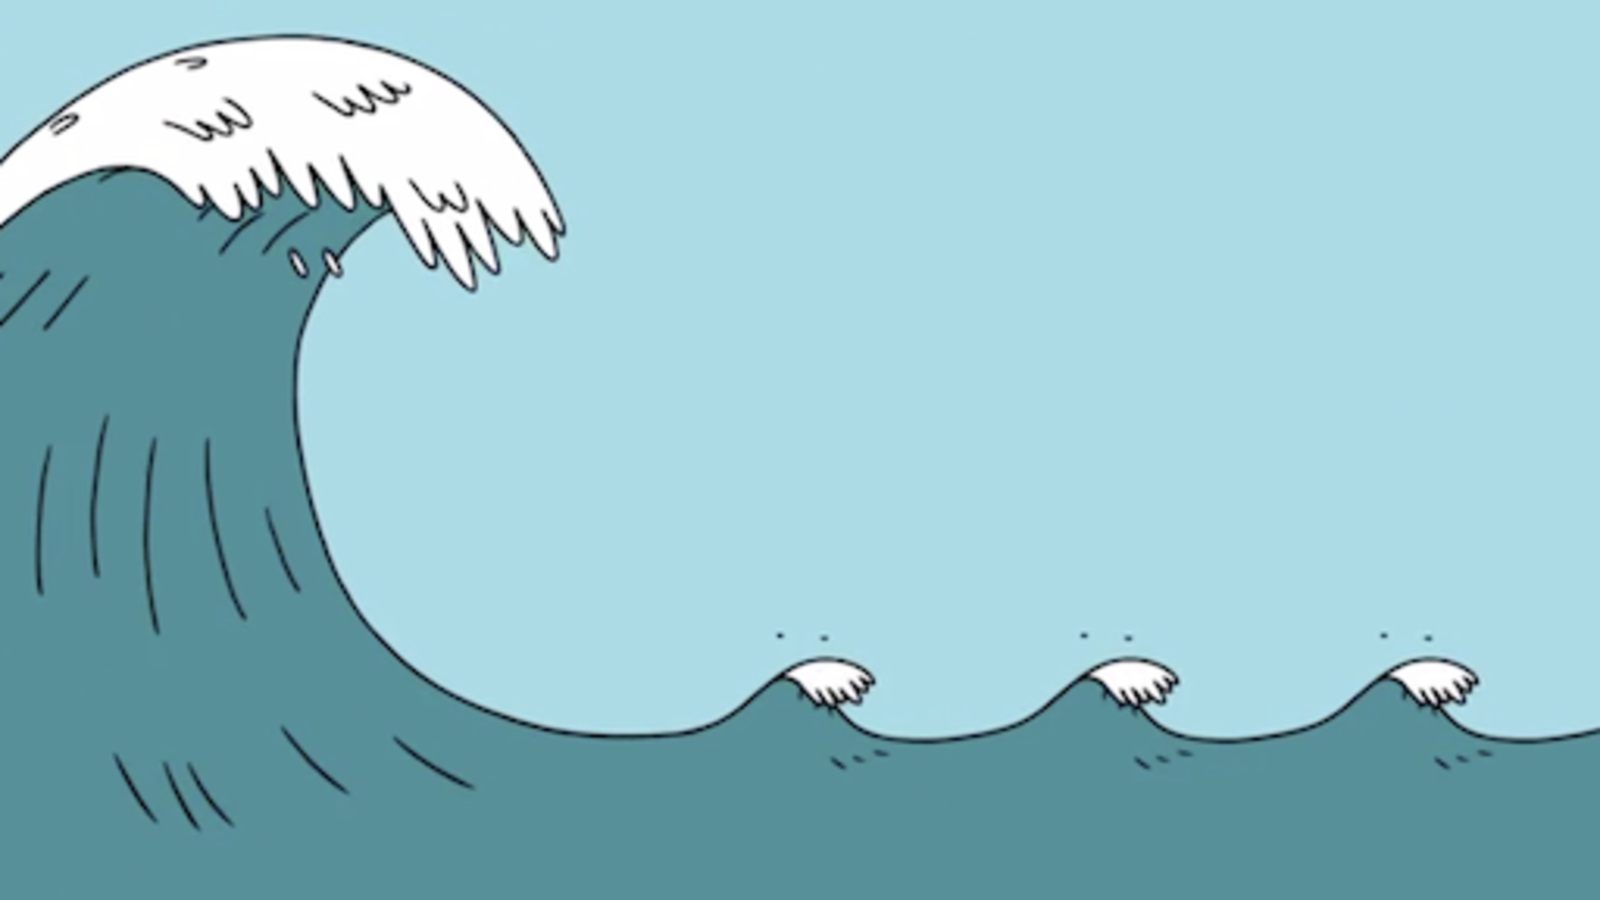 Animation explains how tsunamis form and why they're so